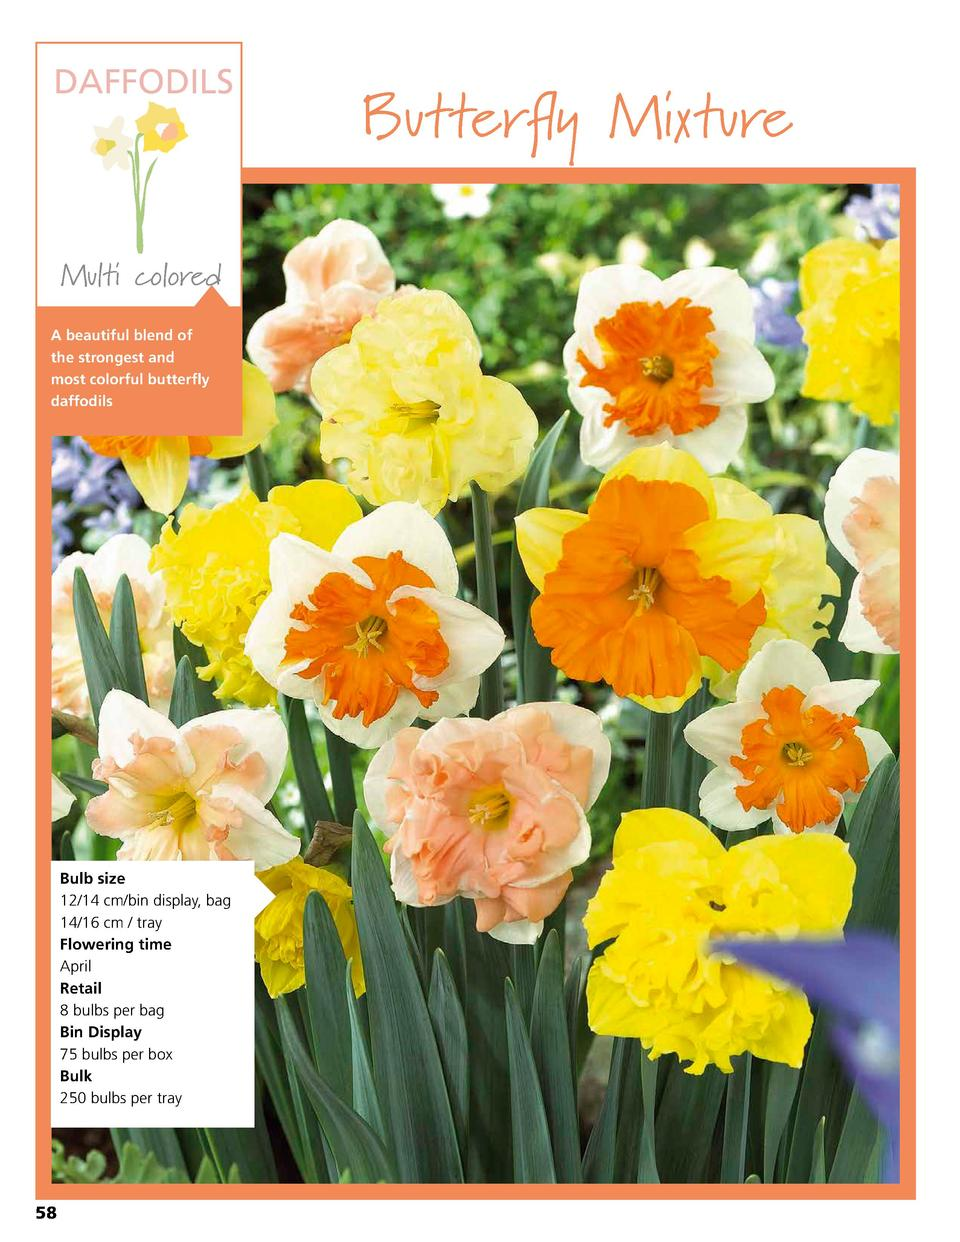 DAFFODILS  Multi colored A beautiful blend of the strongest and most colorful butterfly daffodils  Bulb size 12 14 cm bin ...